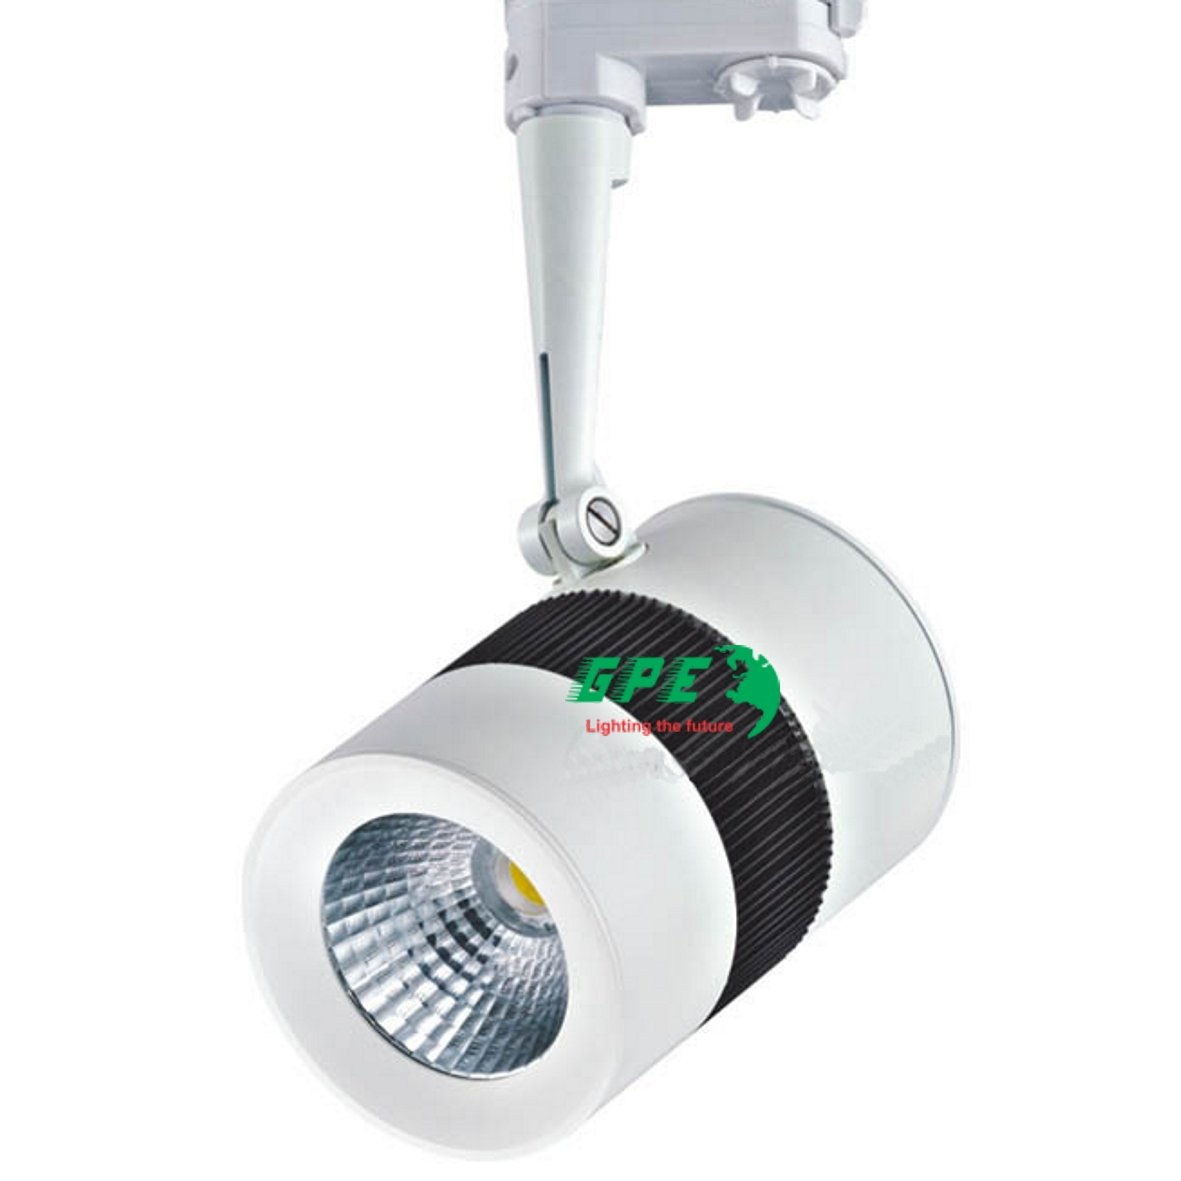 den_led_ray_gpe-sl25w-v5